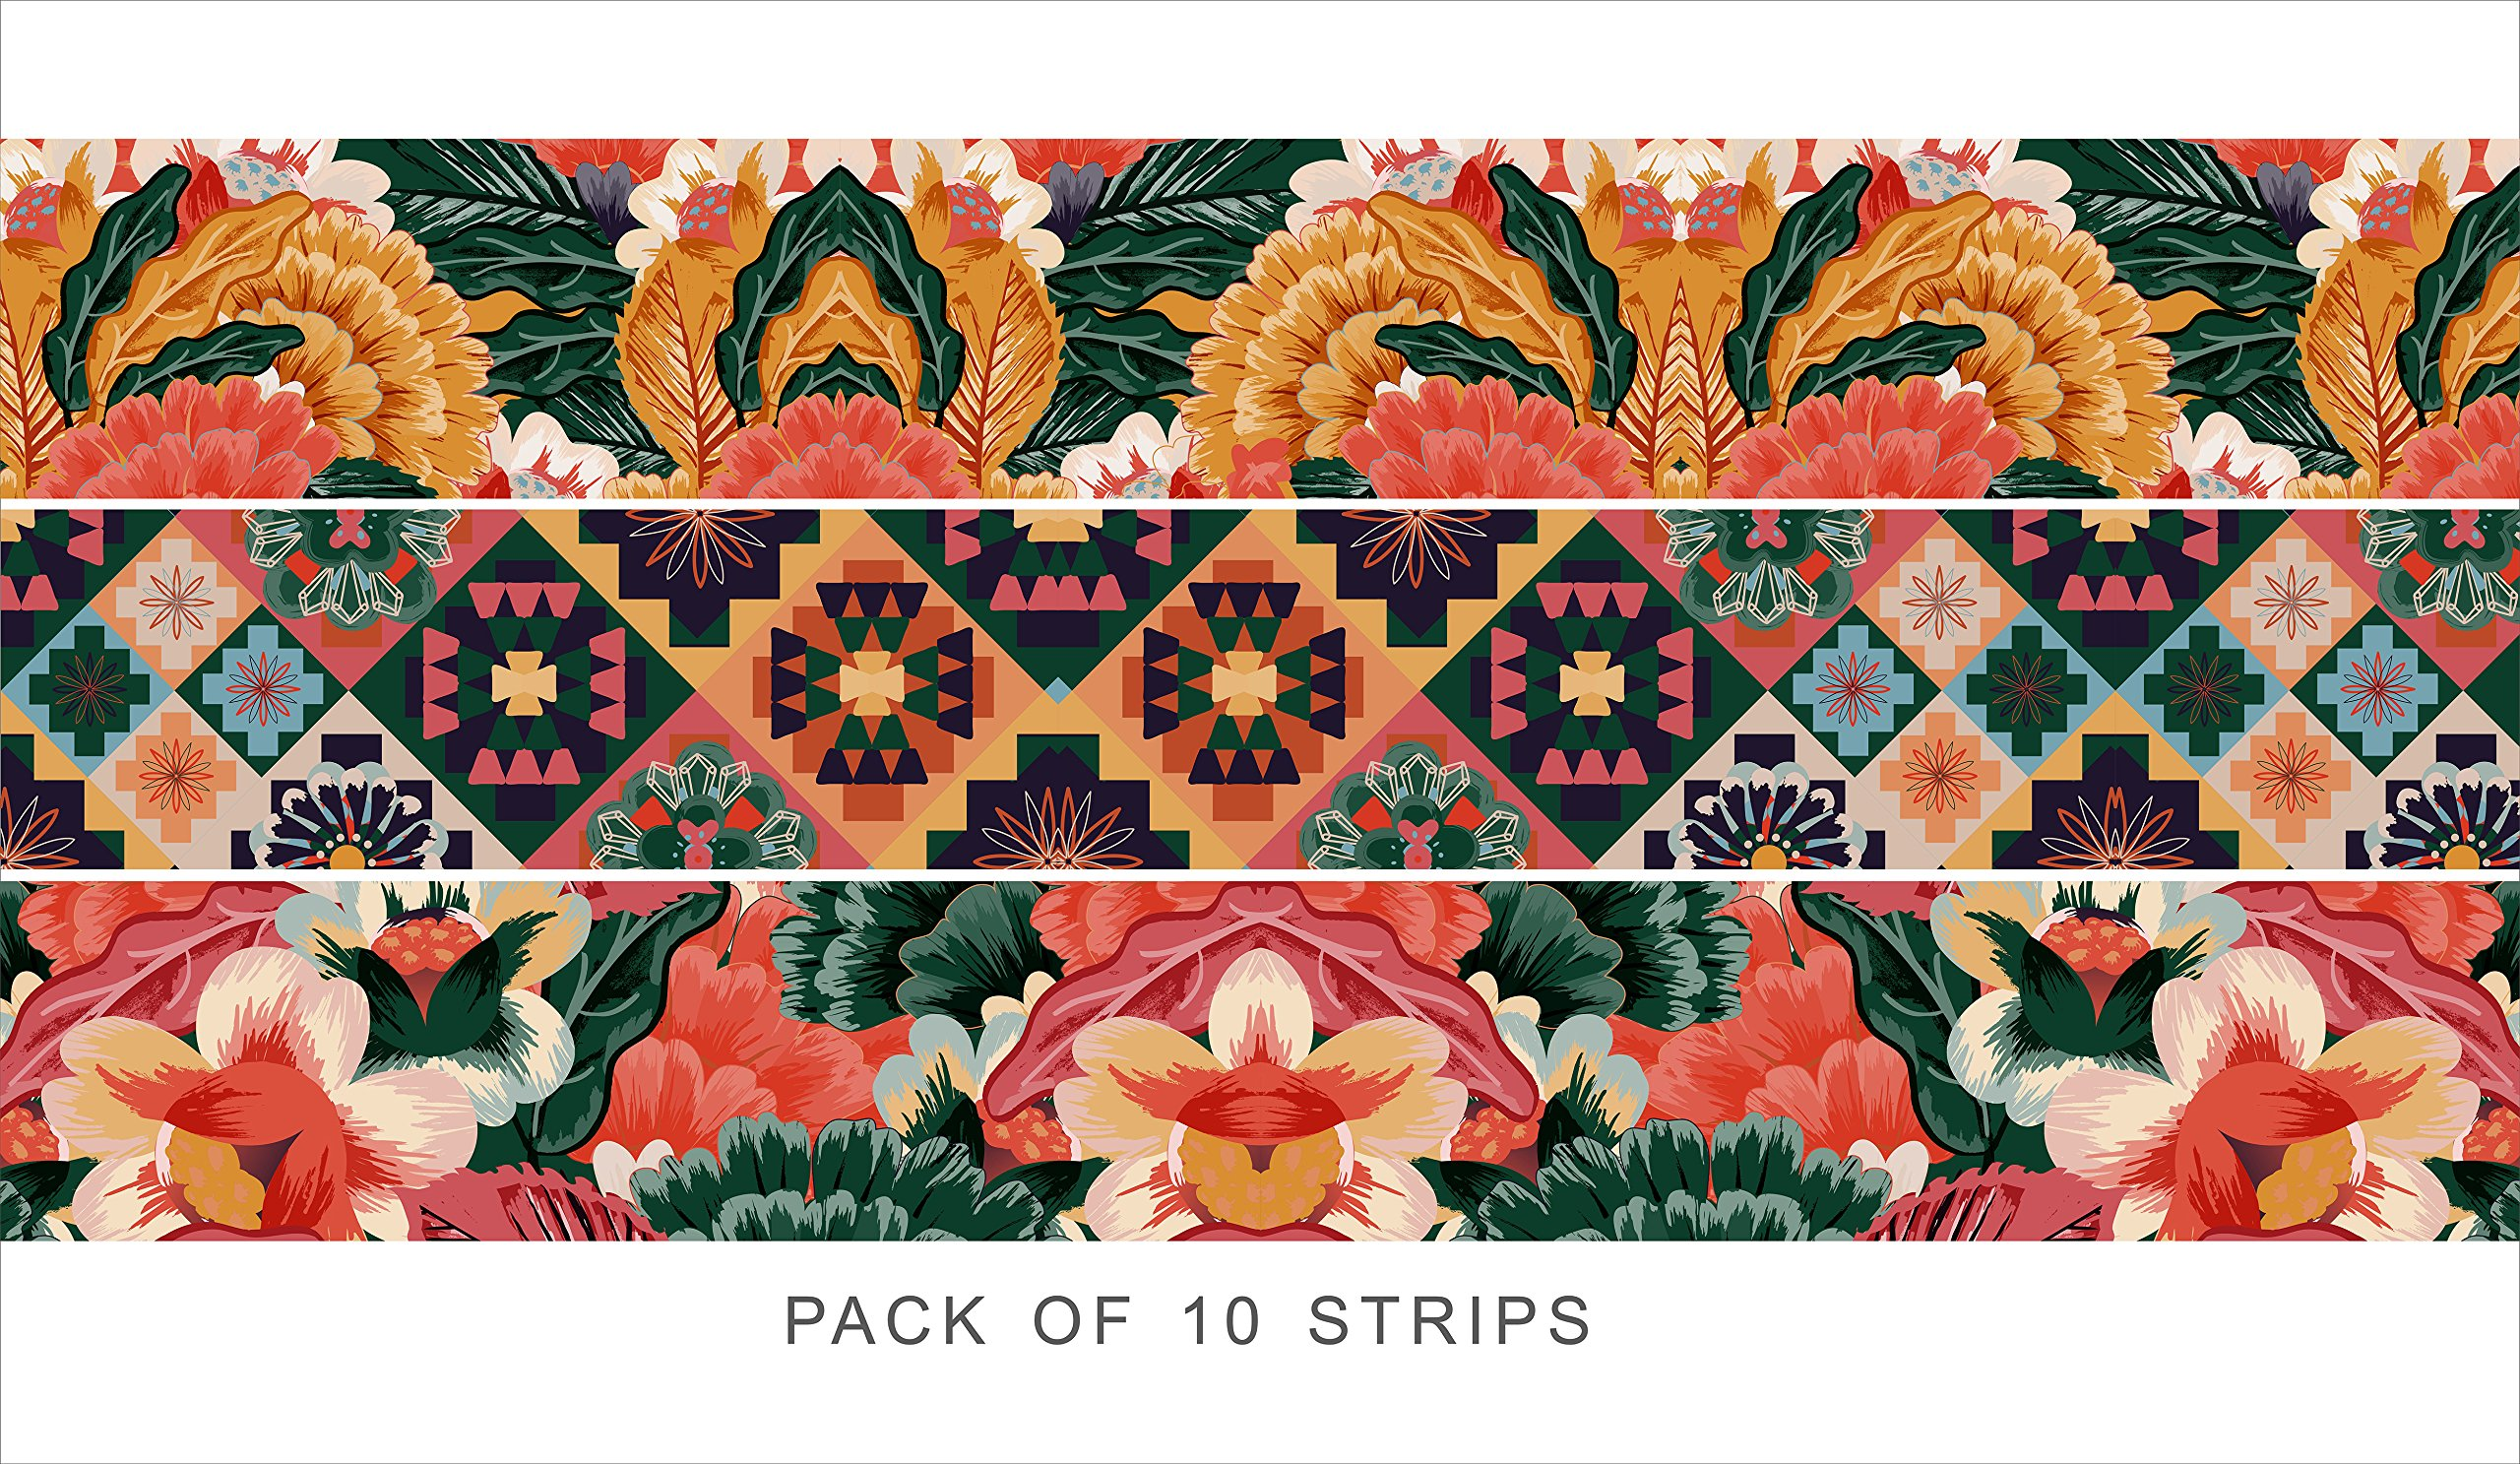 Bleucoin Stair Riser Decal Strips : Tropical Interior Trend - Pack of 10 Strips with 124cm Length (8'' x 49'' (Pack of 10 Strips)) by Bleucoin (Image #2)